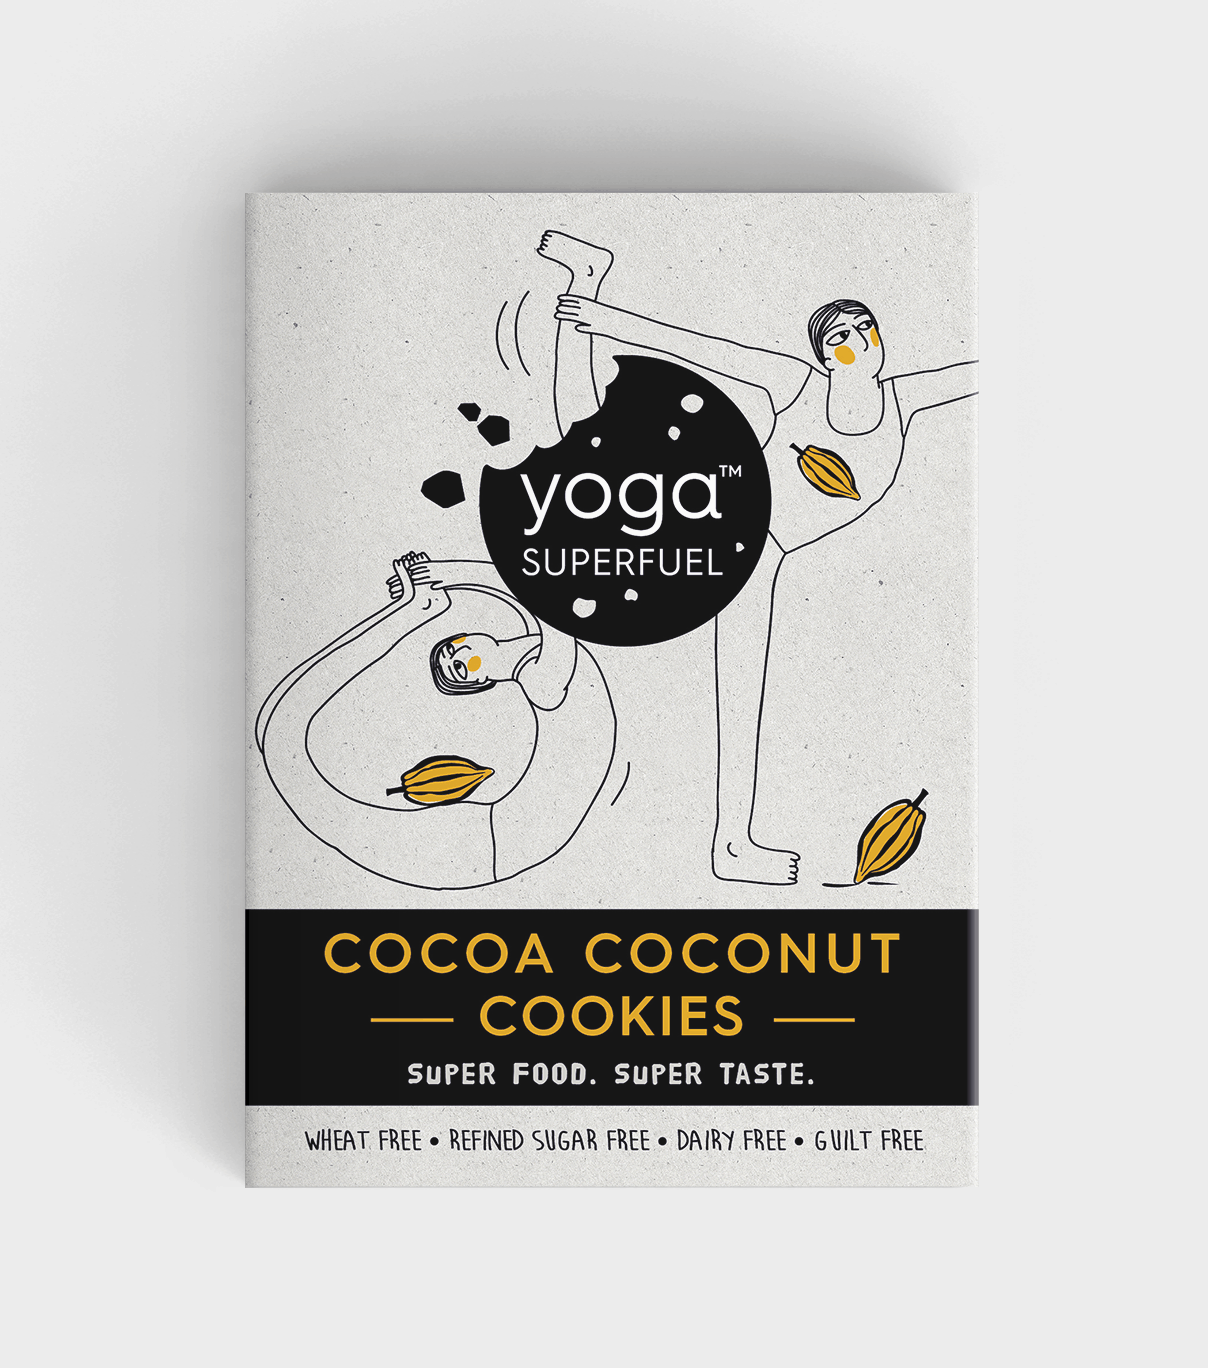 Healthy Snack Vegan Gluten Free Chocolate Cookie Singapore